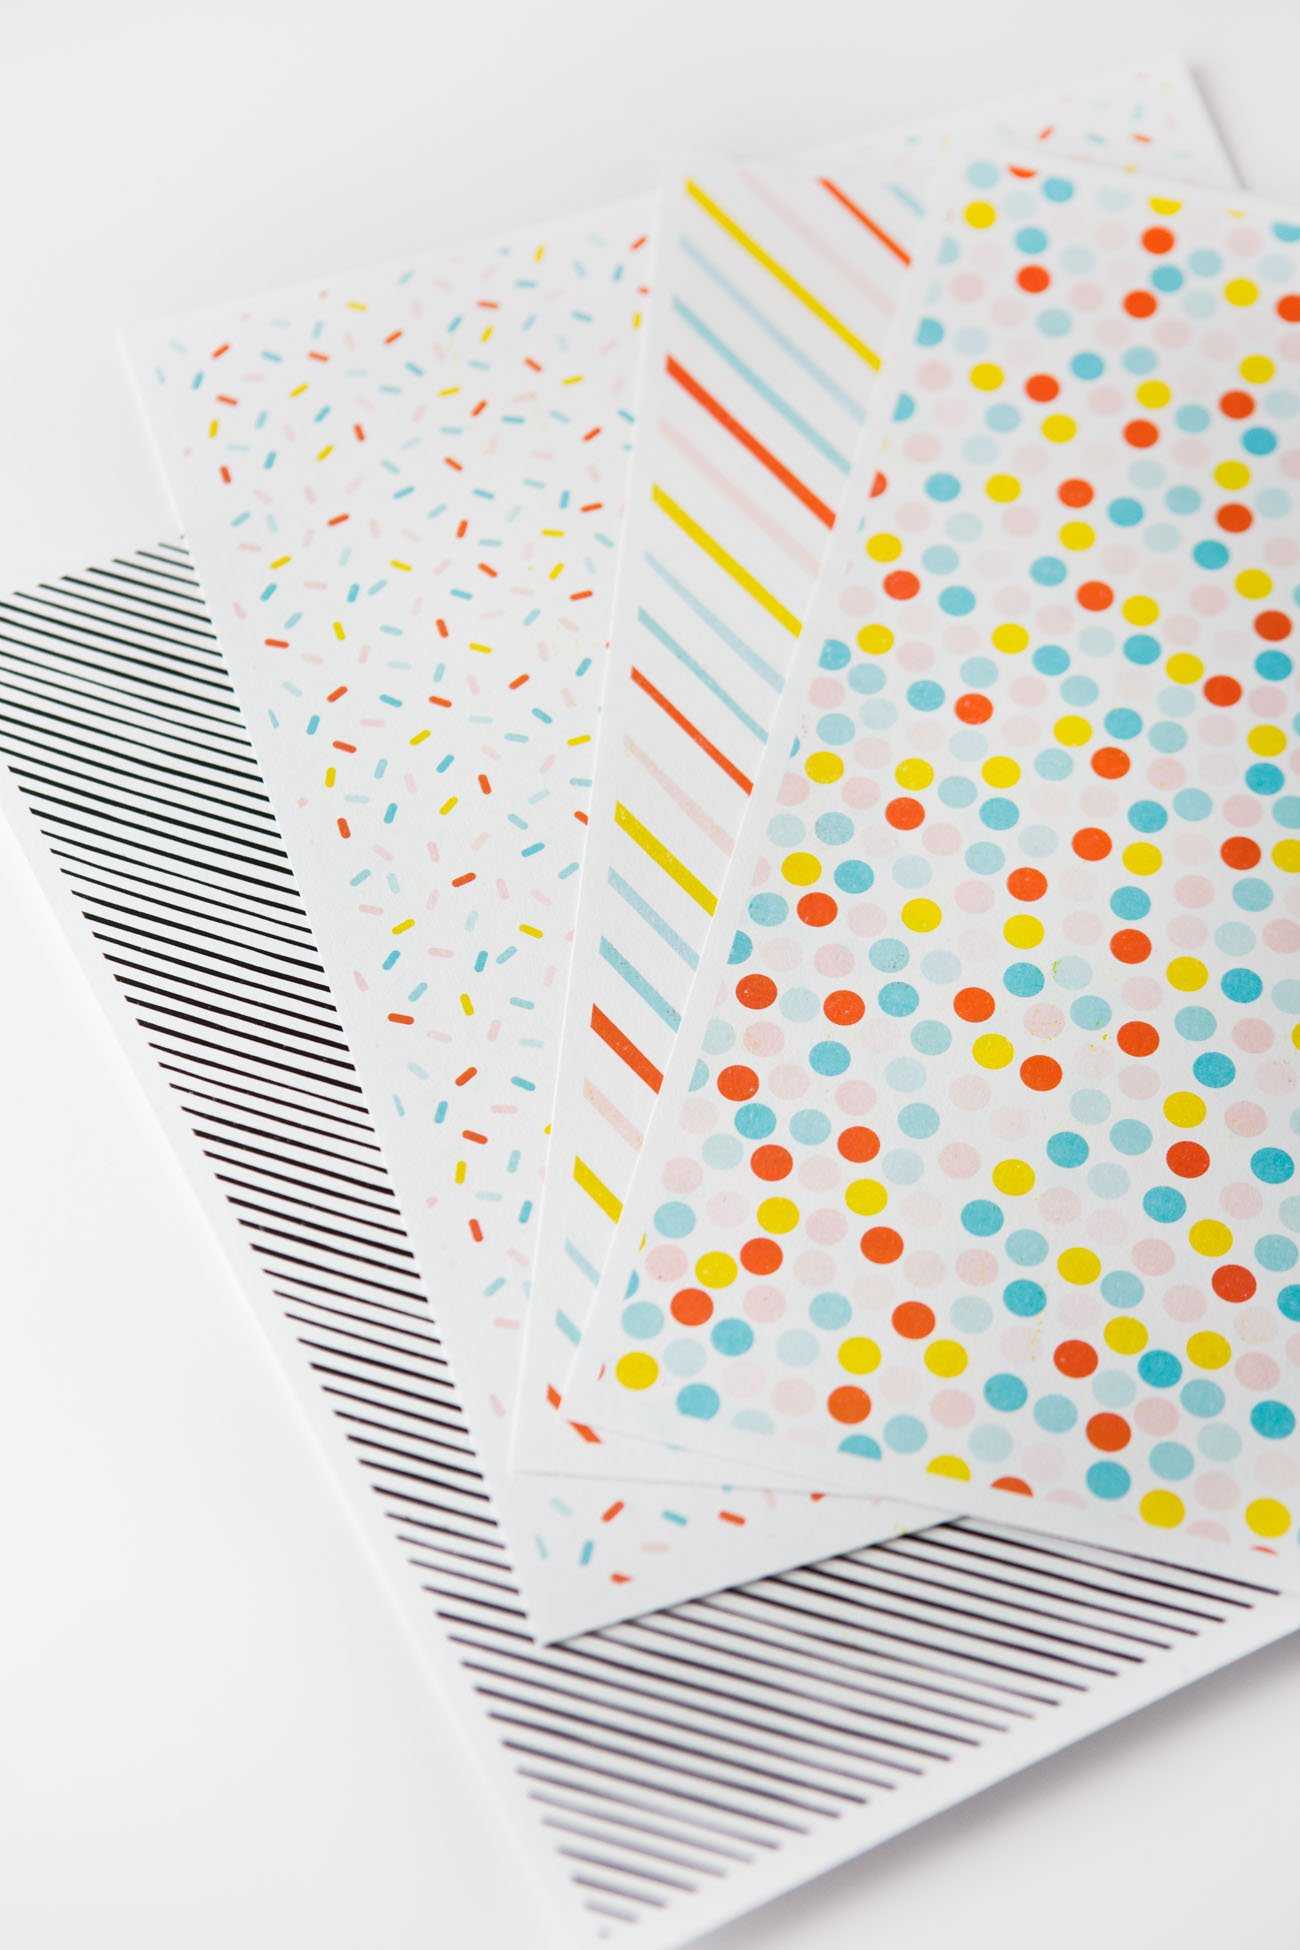 Rainbow printable scrapbook paper in sprinkle pattern, stripe, polka dot, and black and white stripe